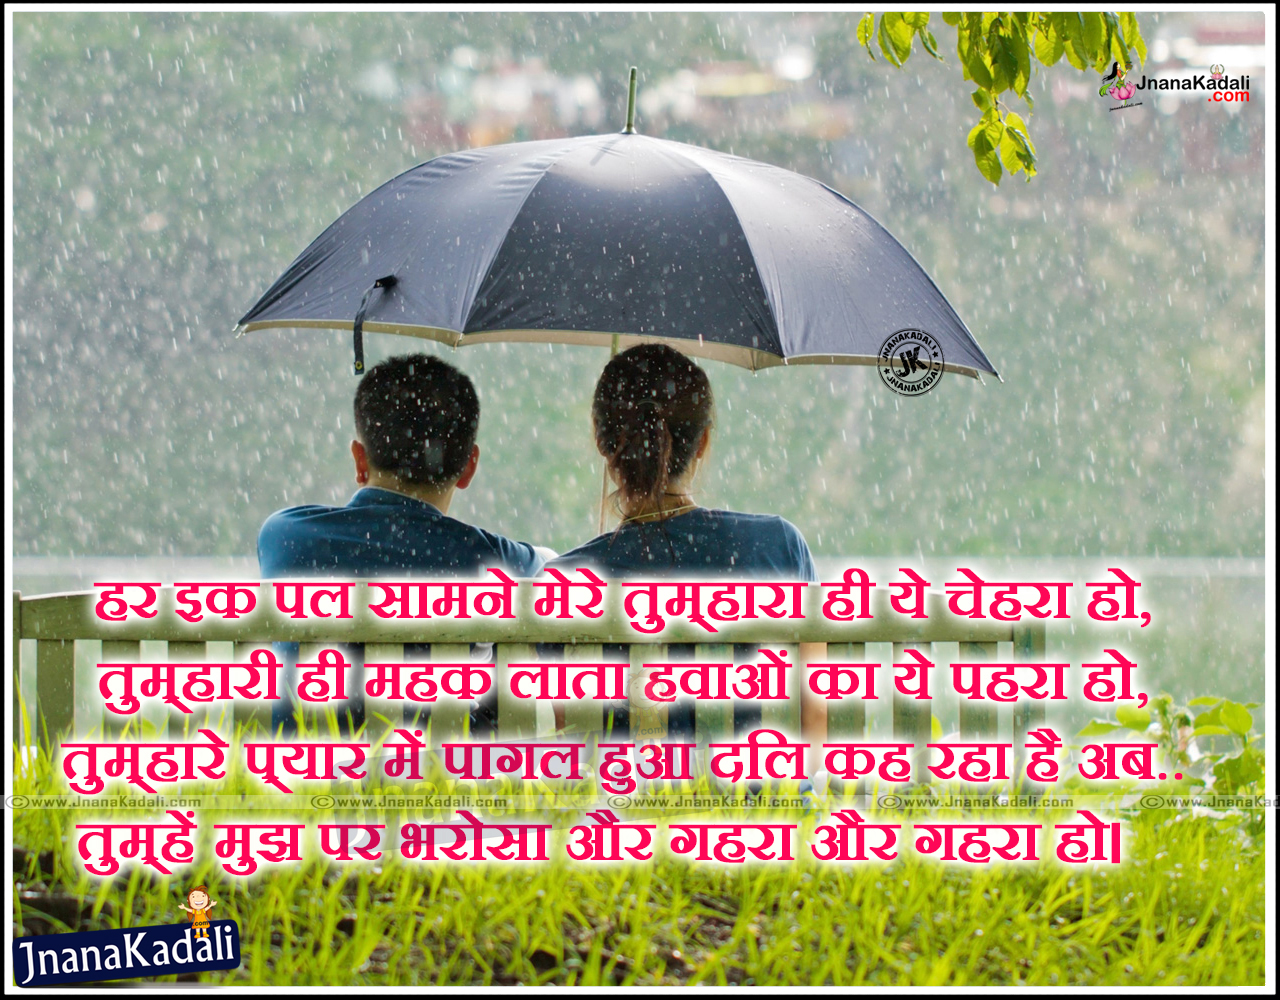 Hd love images in tamil impremedia here is a new and best 2016 tamil love sayings and quotes valentines day special thecheapjerseys Images